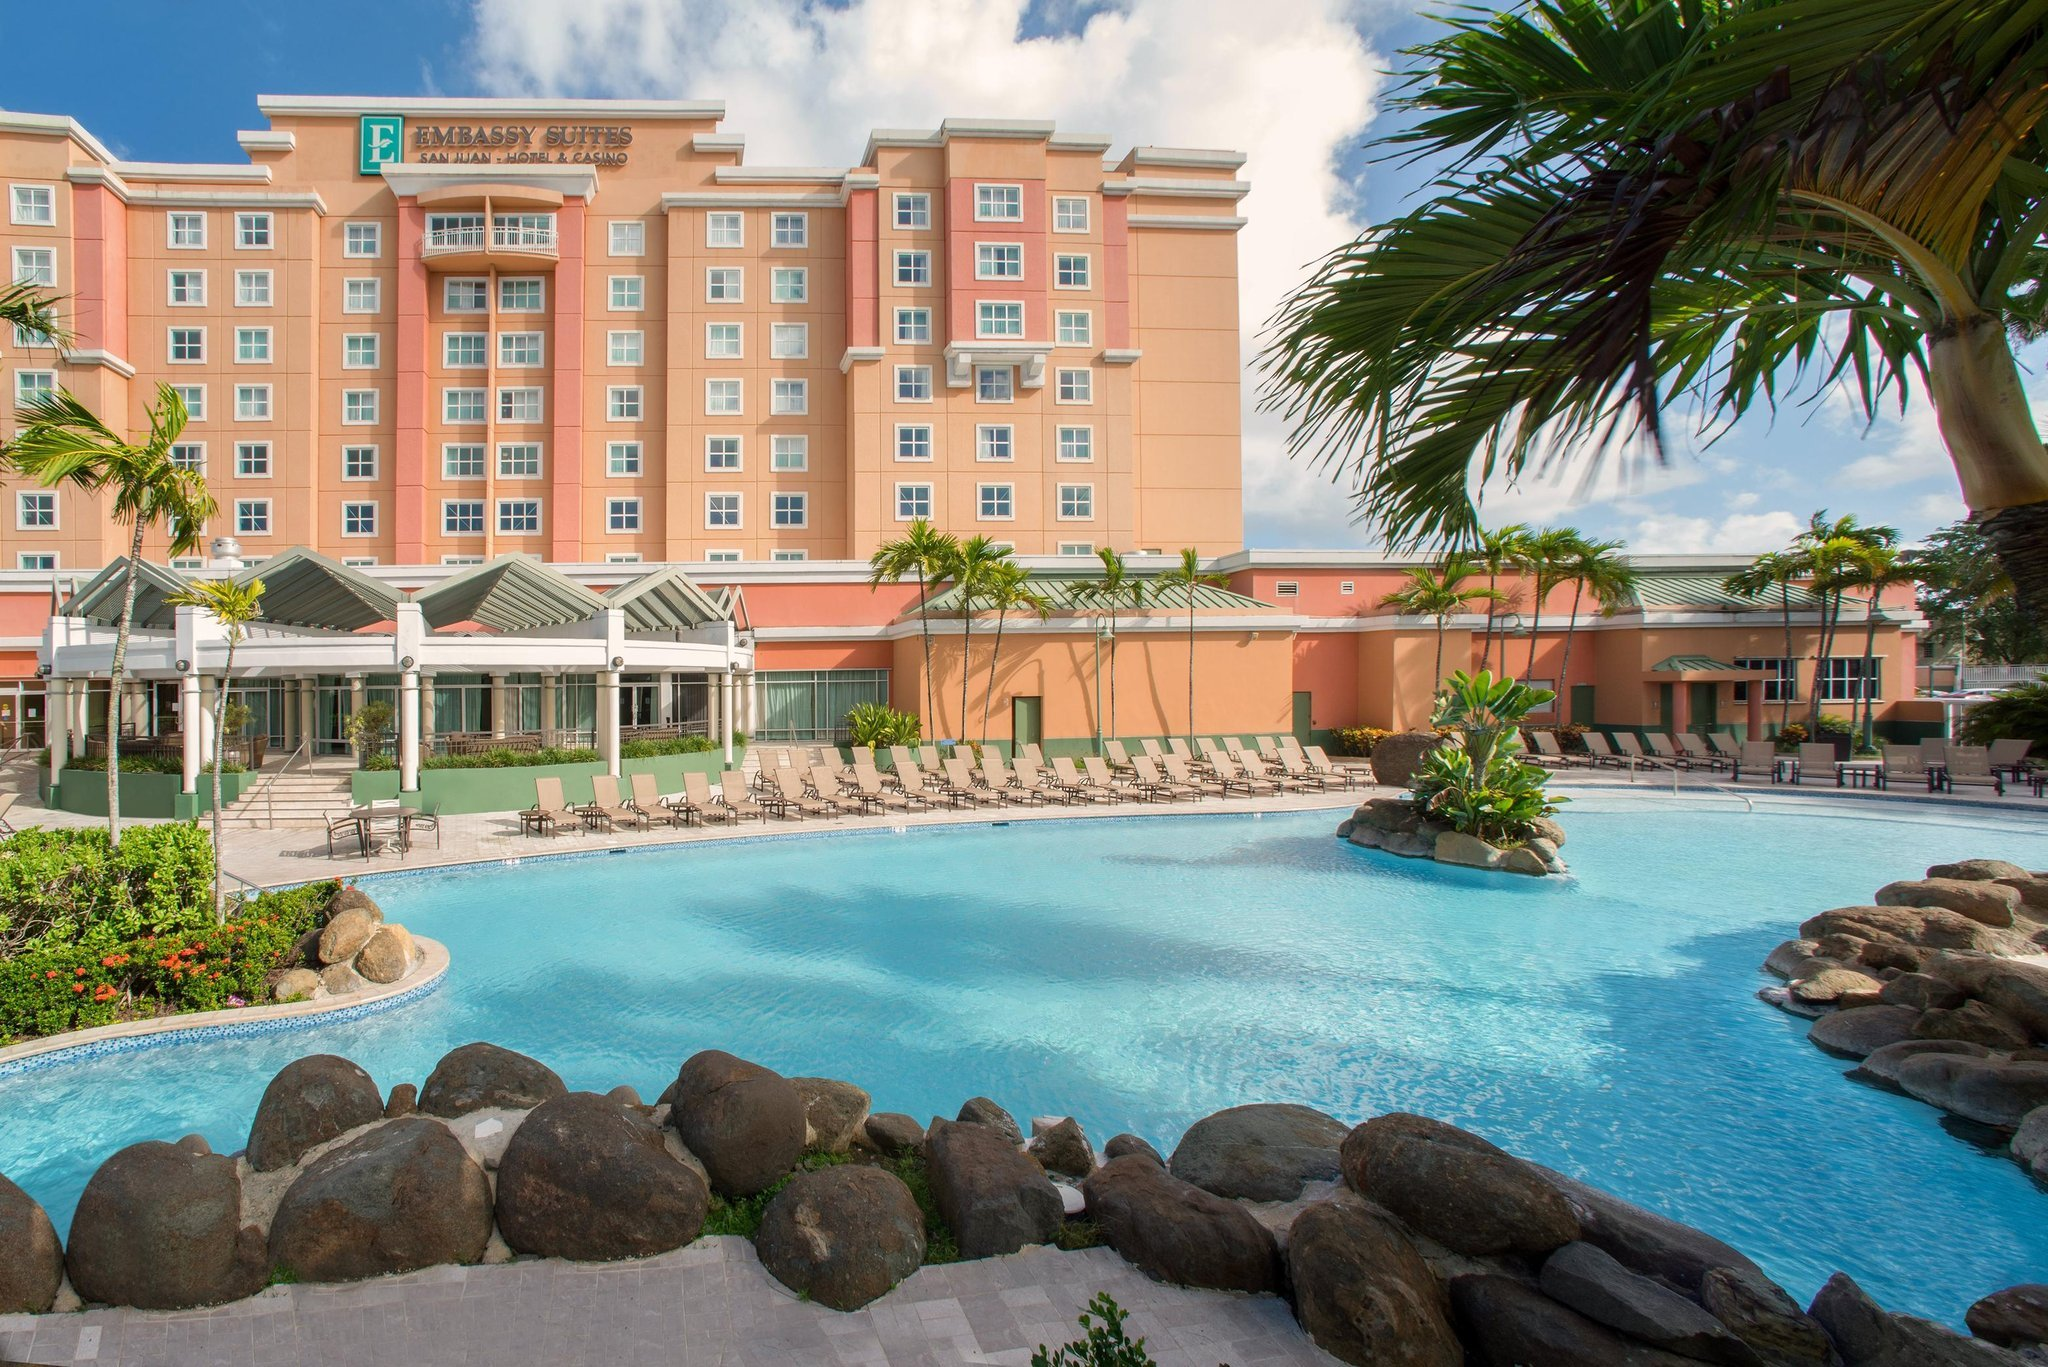 ‪Embassy Suites by Hilton San Juan Hotel & Casino‬